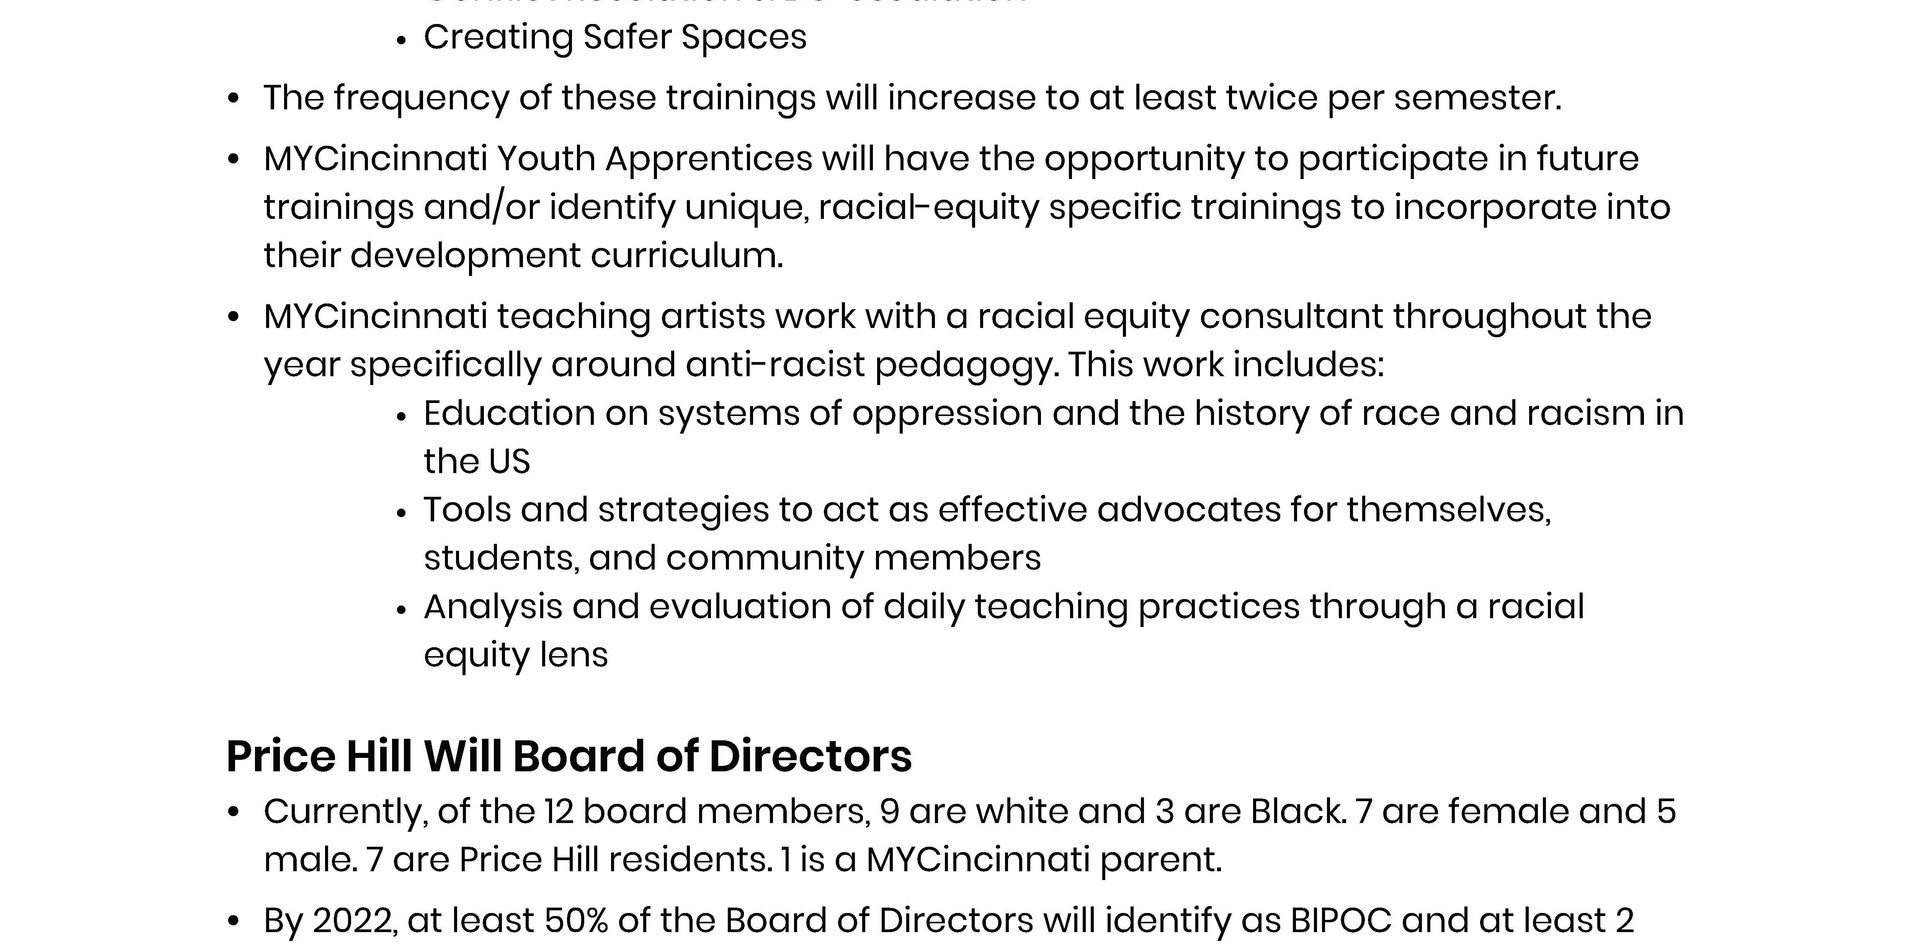 PHW PPP FOR RACIAL EQUITY_Page_5.jpg